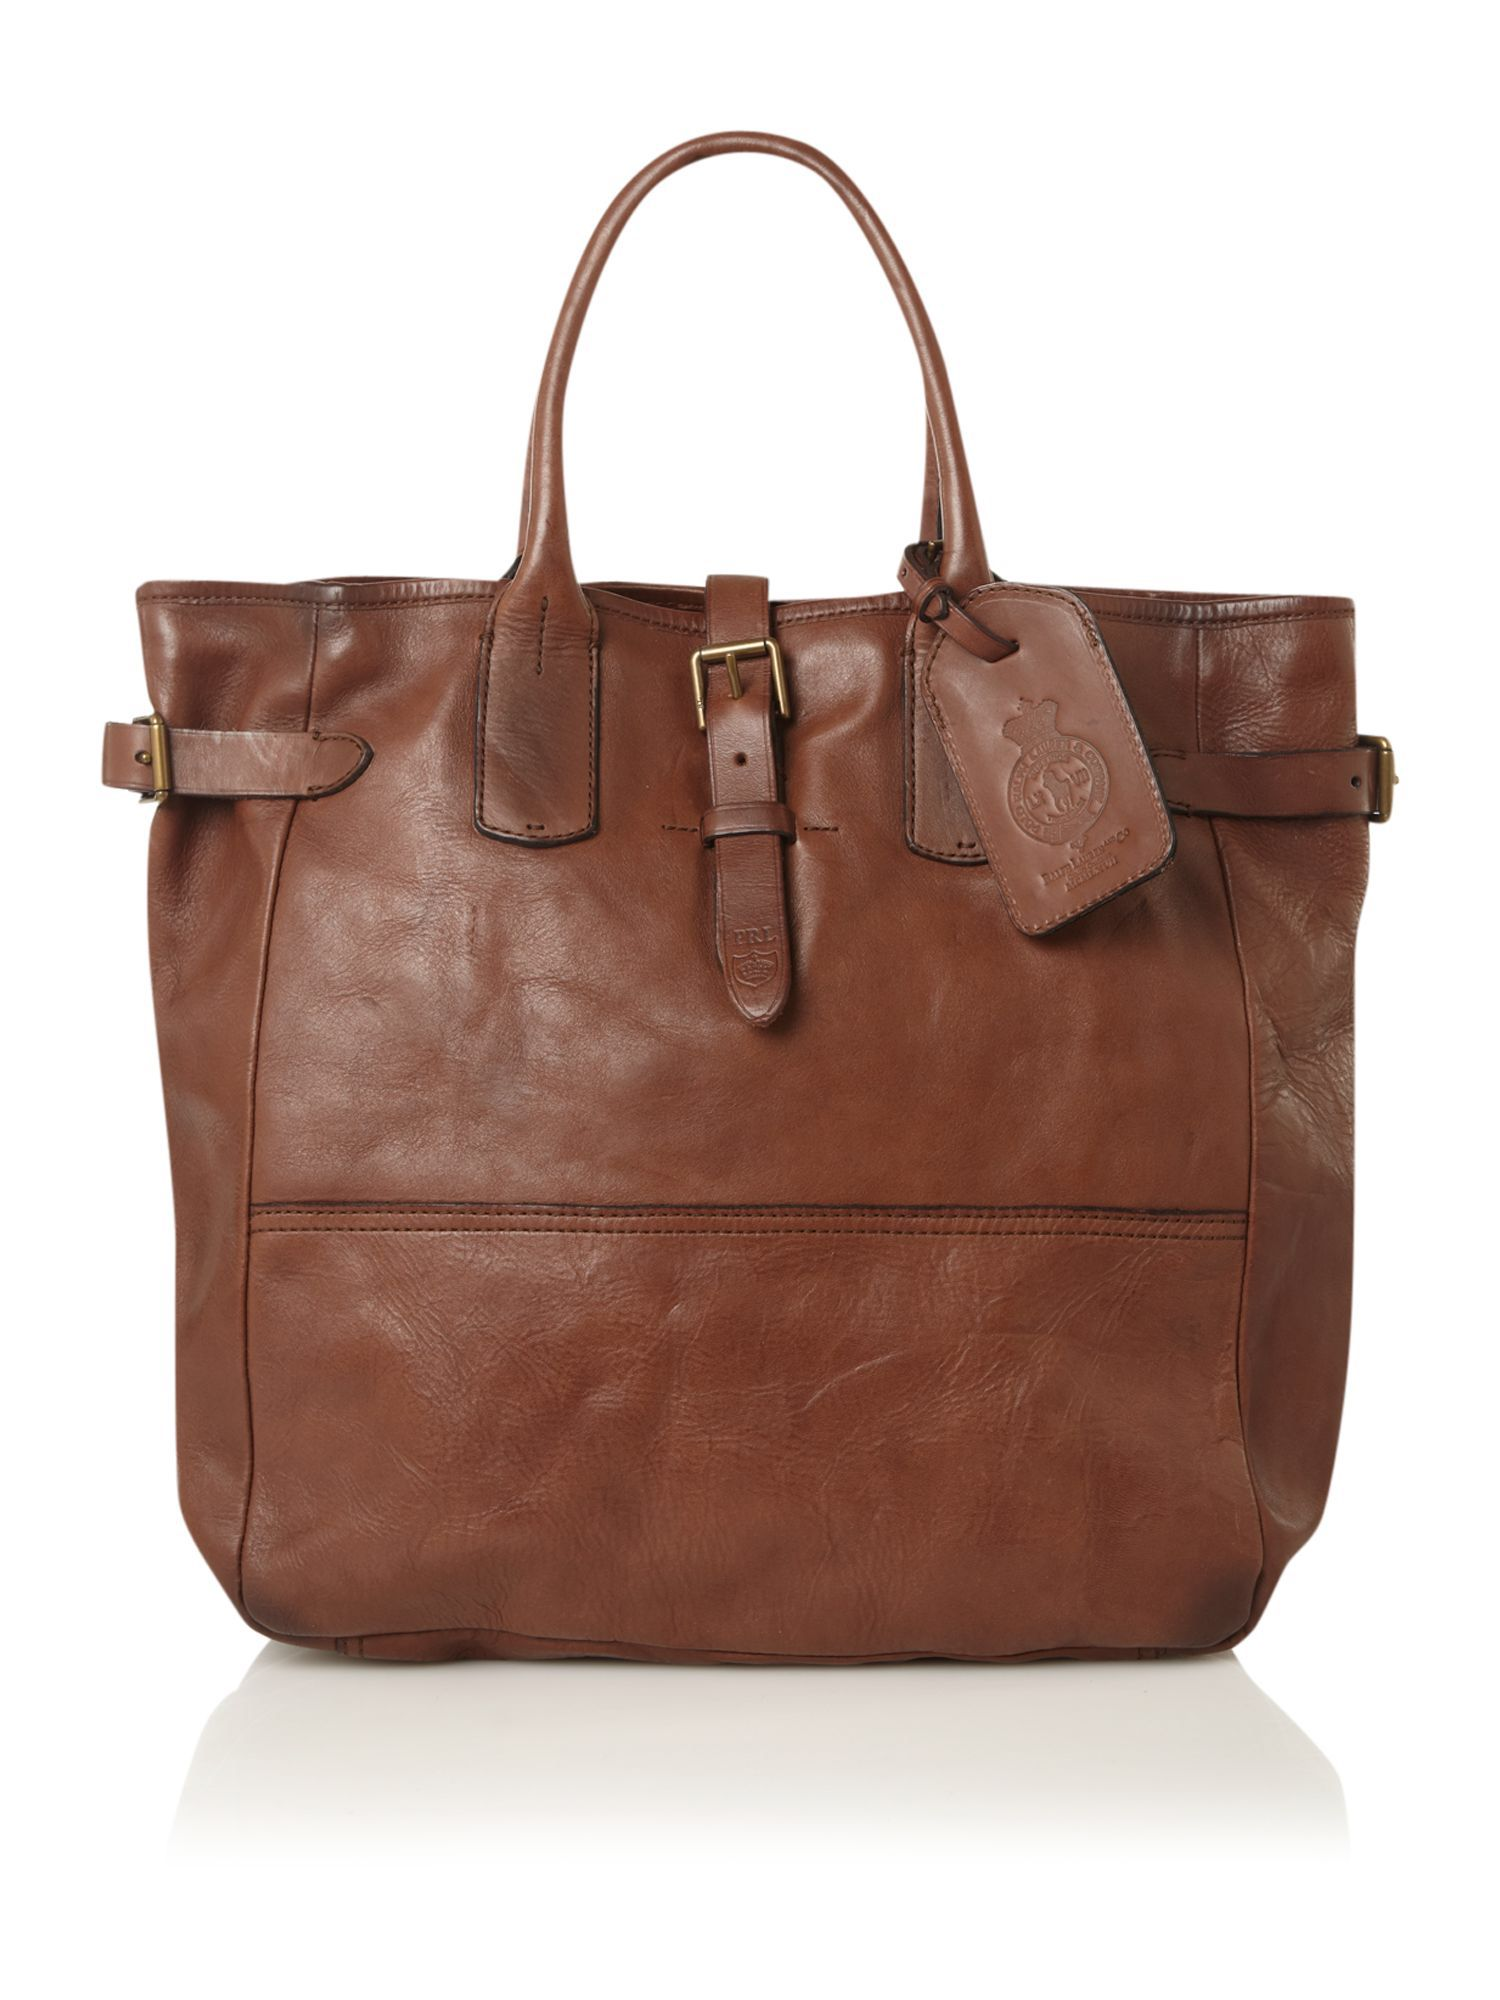 polo ralph lauren brown leather tote bag   Men bags   Pinterest ... 645ae33868